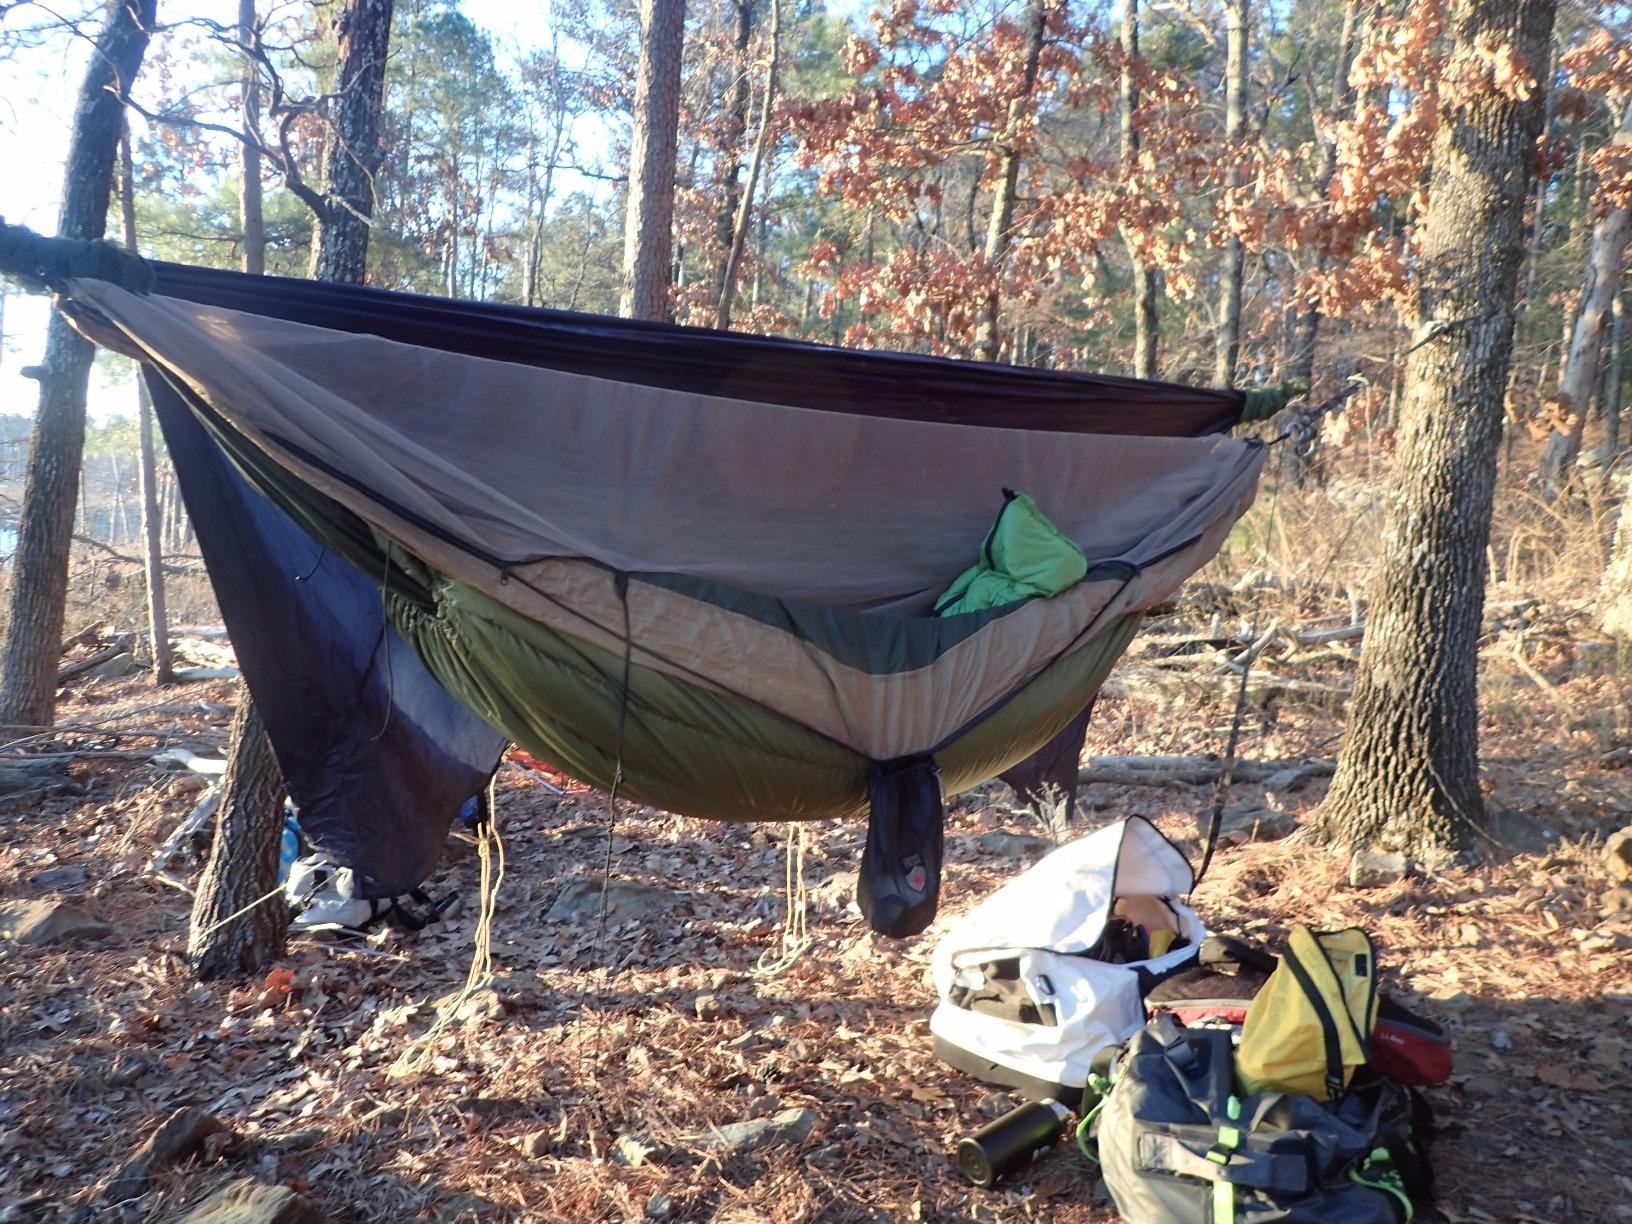 Outdoor Vitals Aerie 20°F Down Underquilt/Sleeping Bag, Use As Ultralight-great for the price